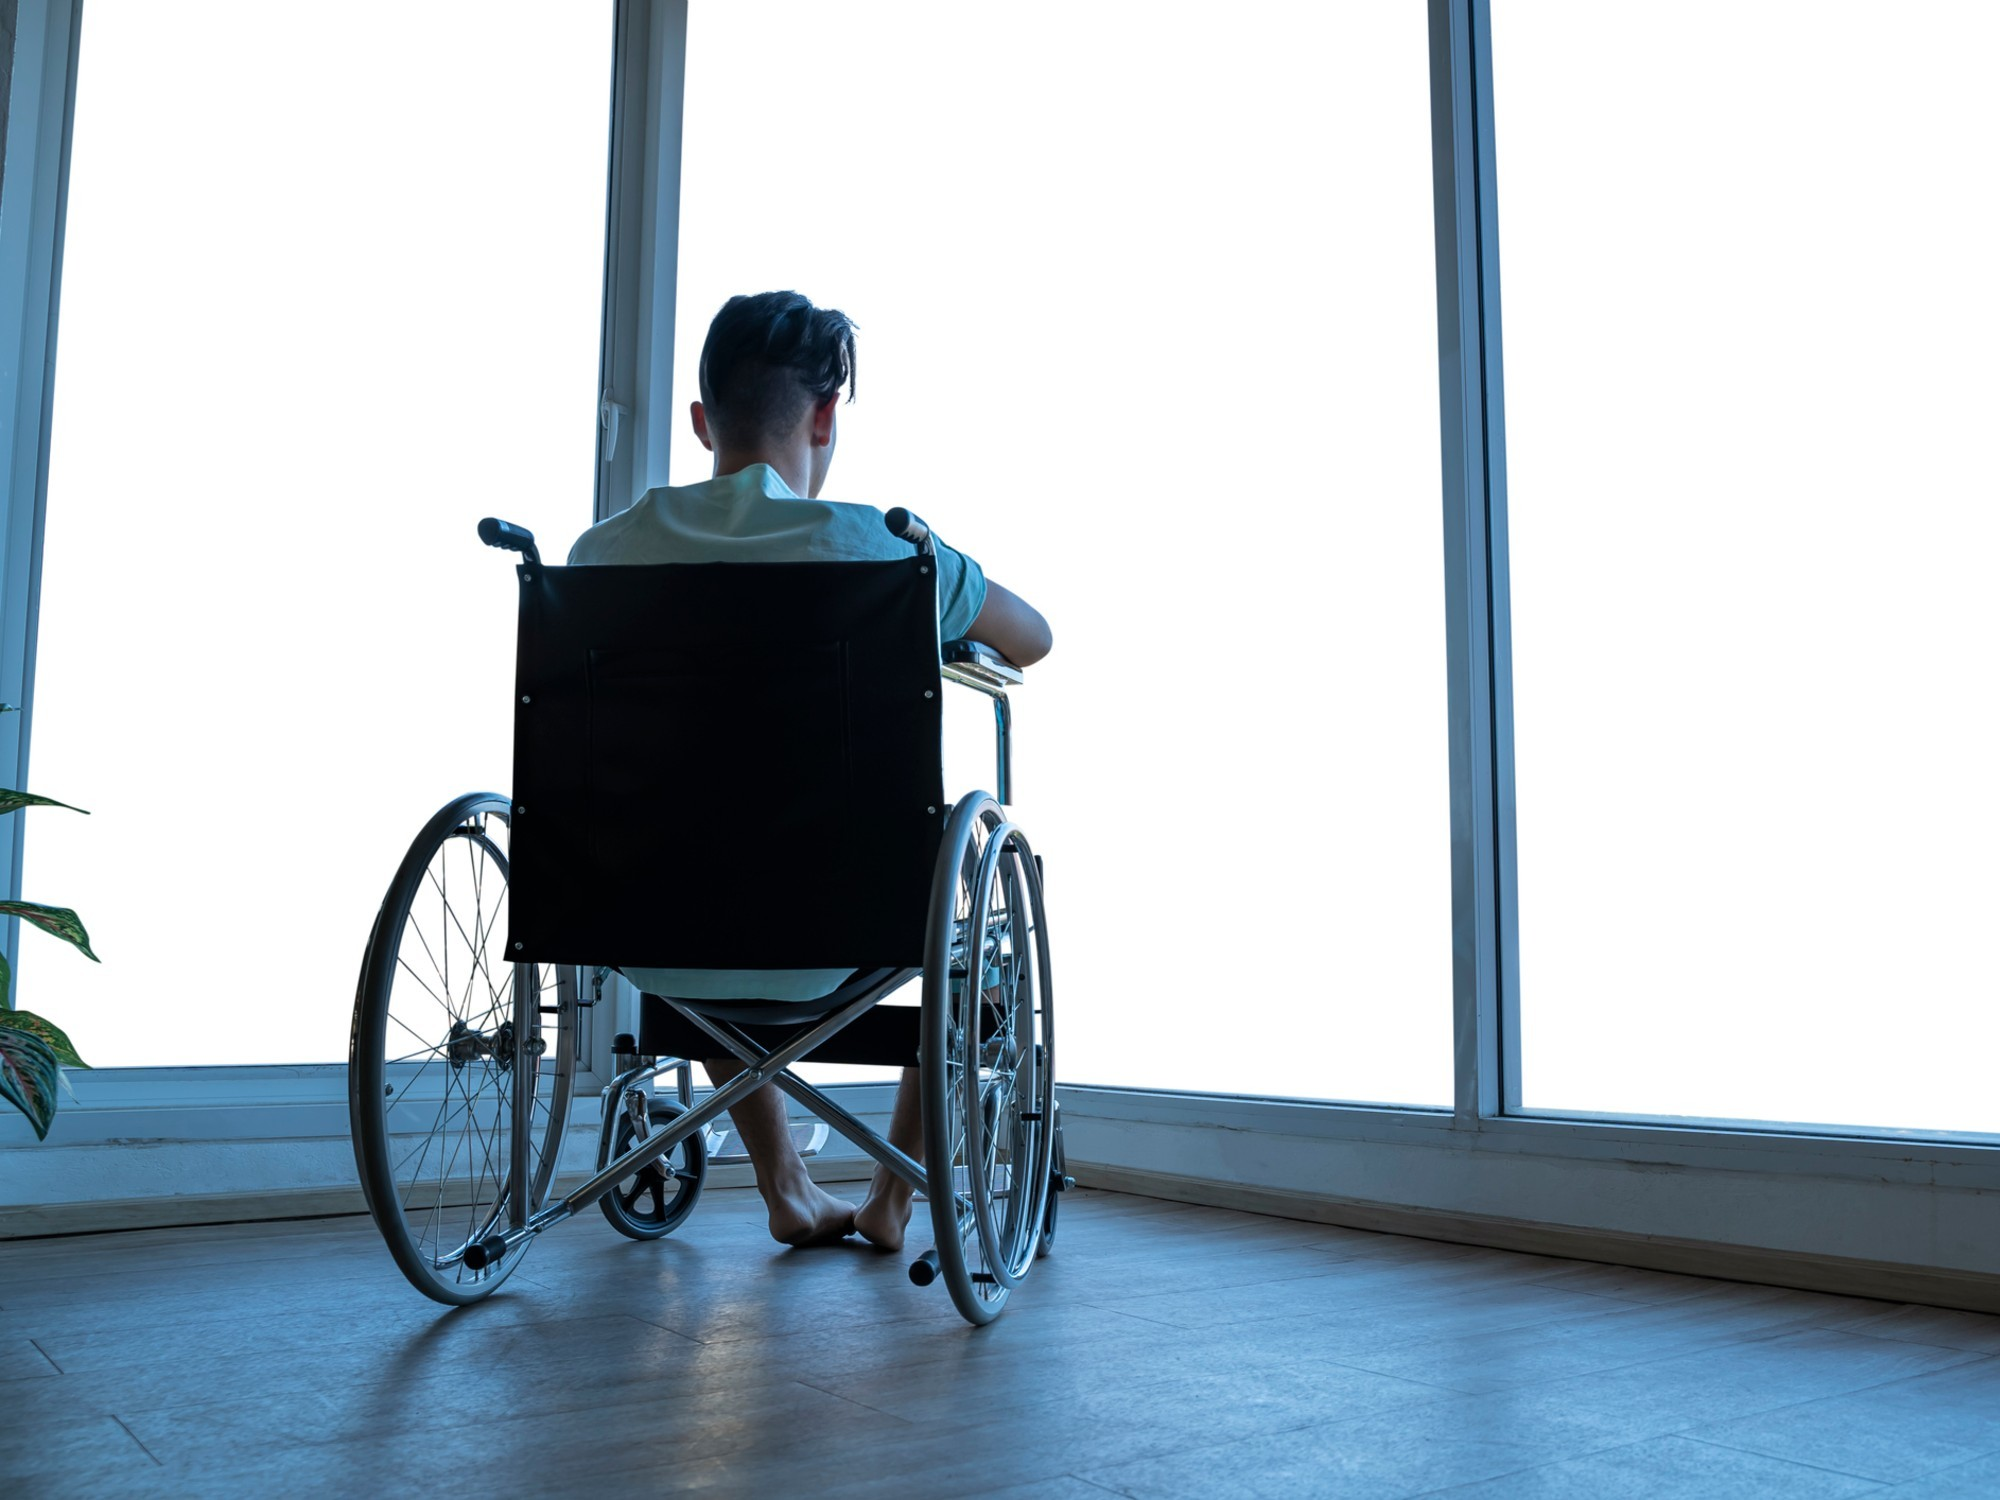 Taking care of your mental health when living with a disability